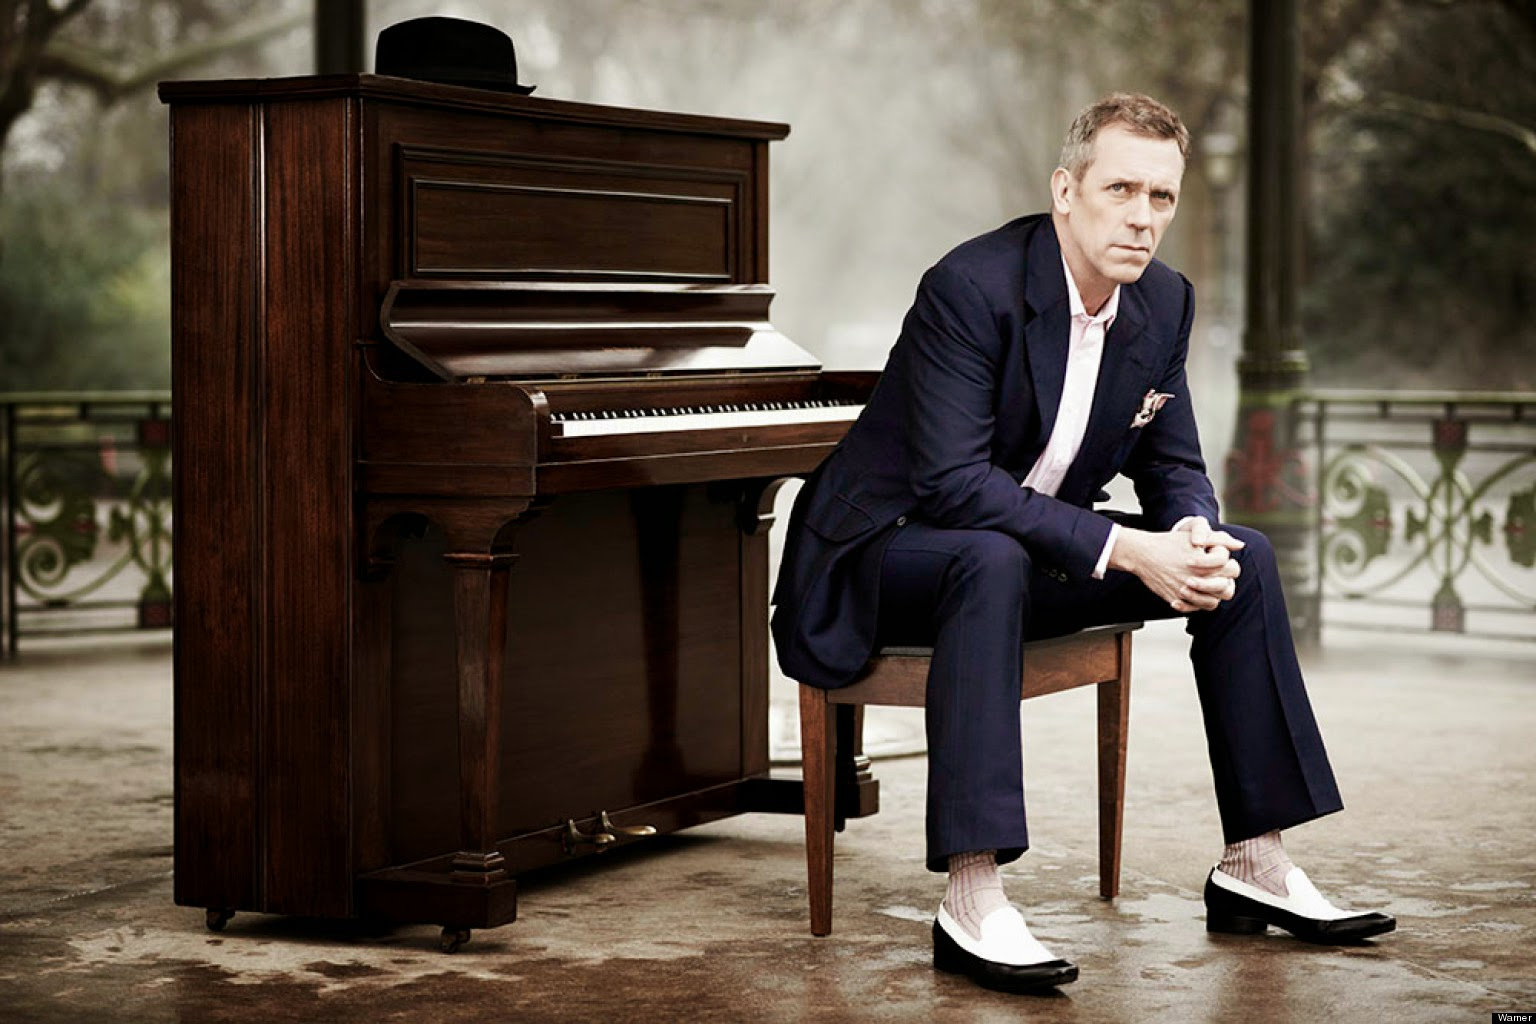 hugh laurie en Mexico Df Venta de boletos